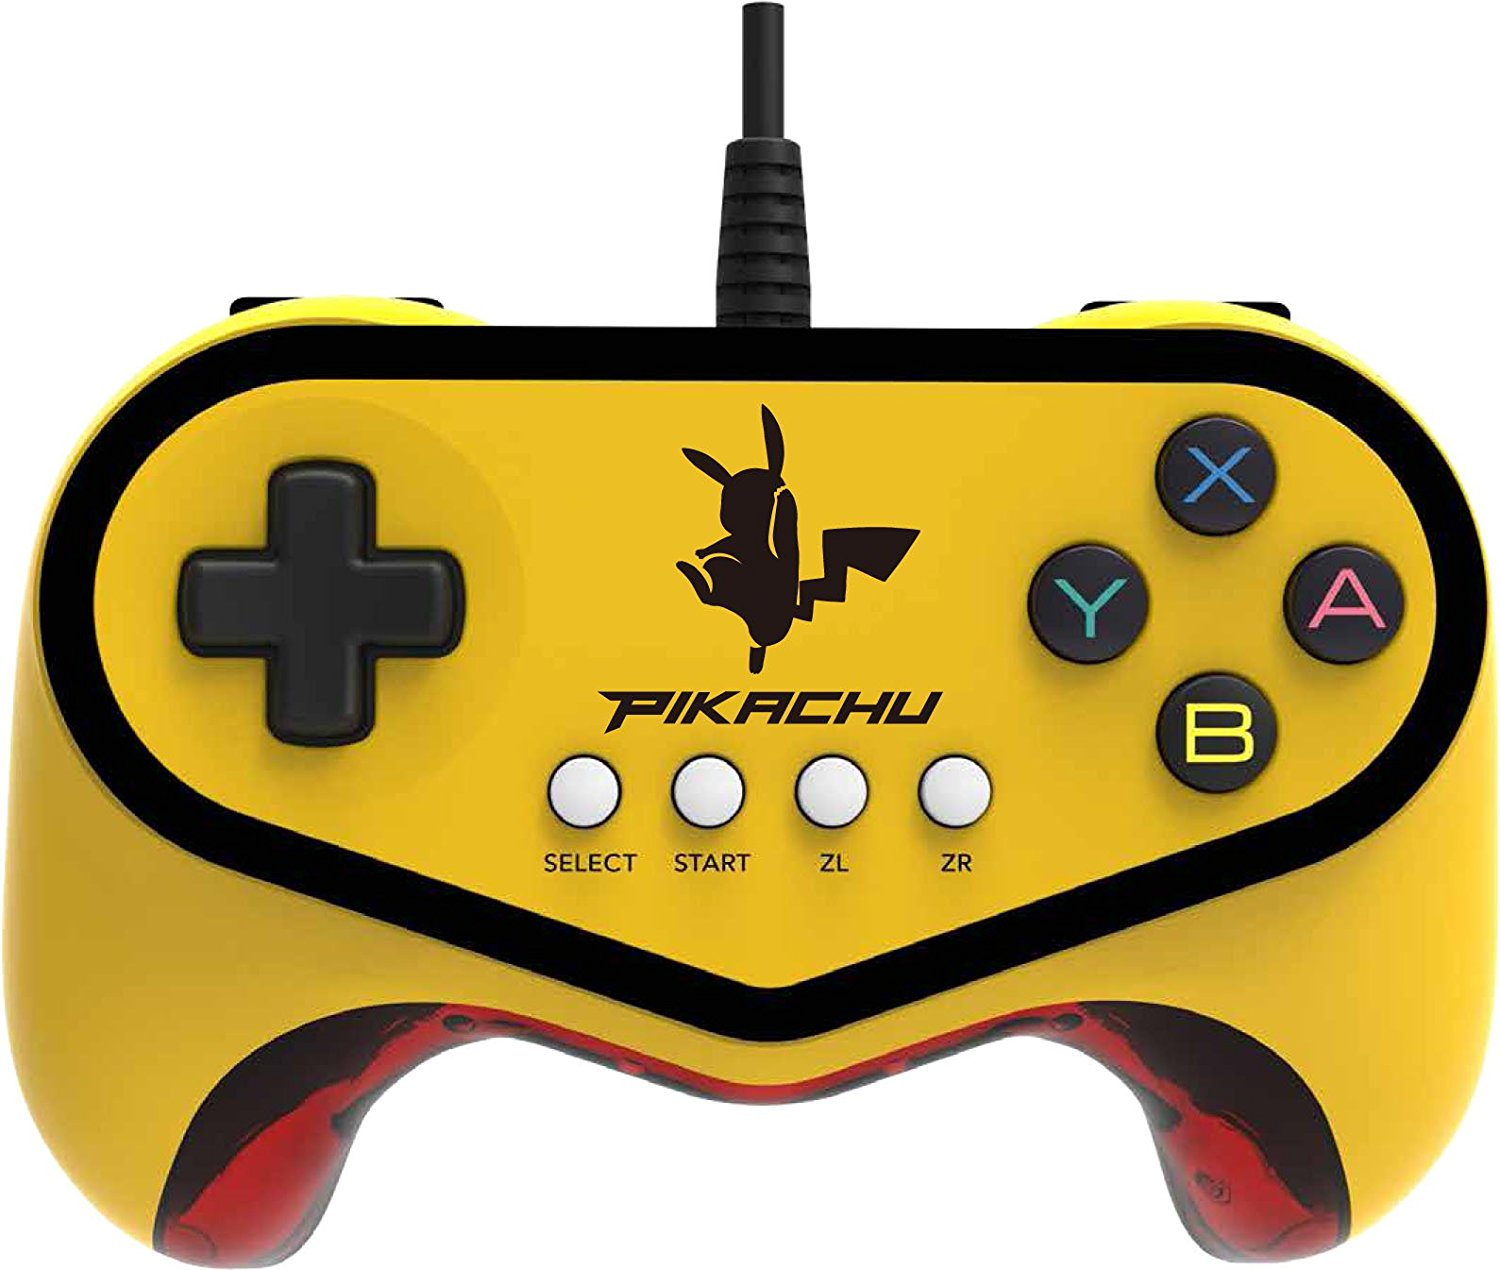 Wii U Pokken Tournament Pro Pad Pikachu Edition by Hori